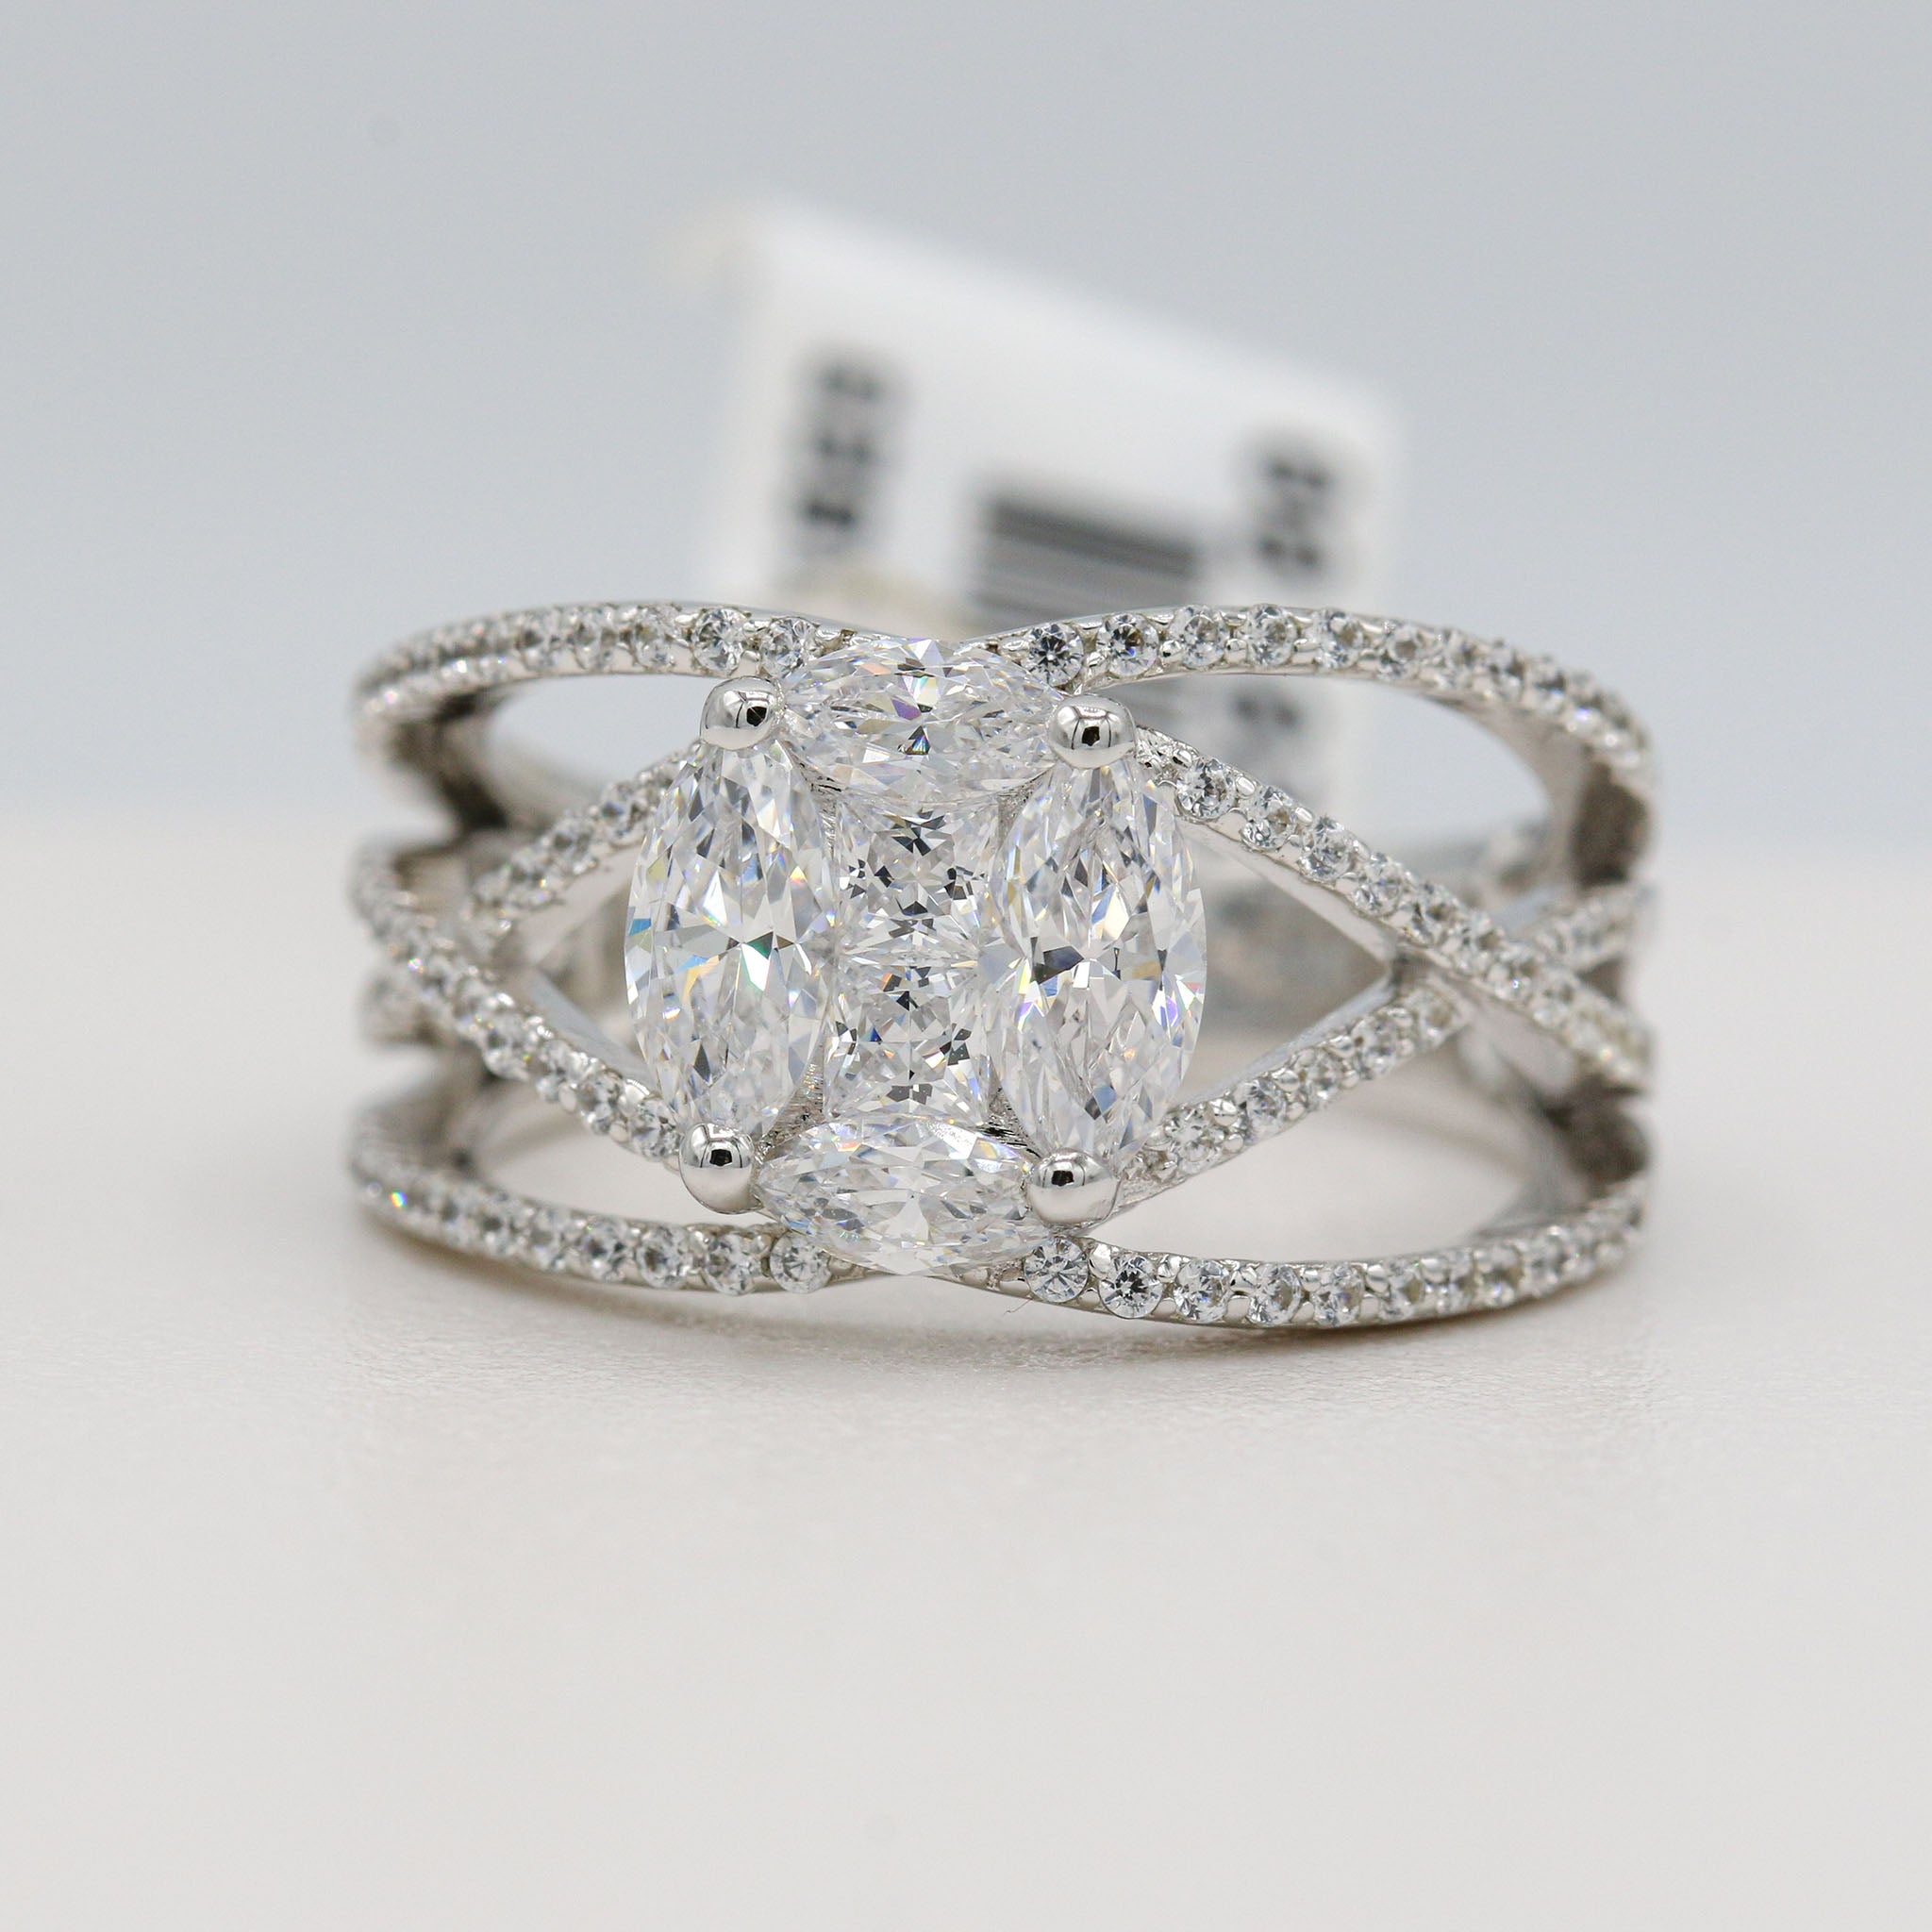 Splendid Lafonn Sterling Silver Bonded in Platinum Criss Cross Ring (2.24ct Simulated Diamonds)